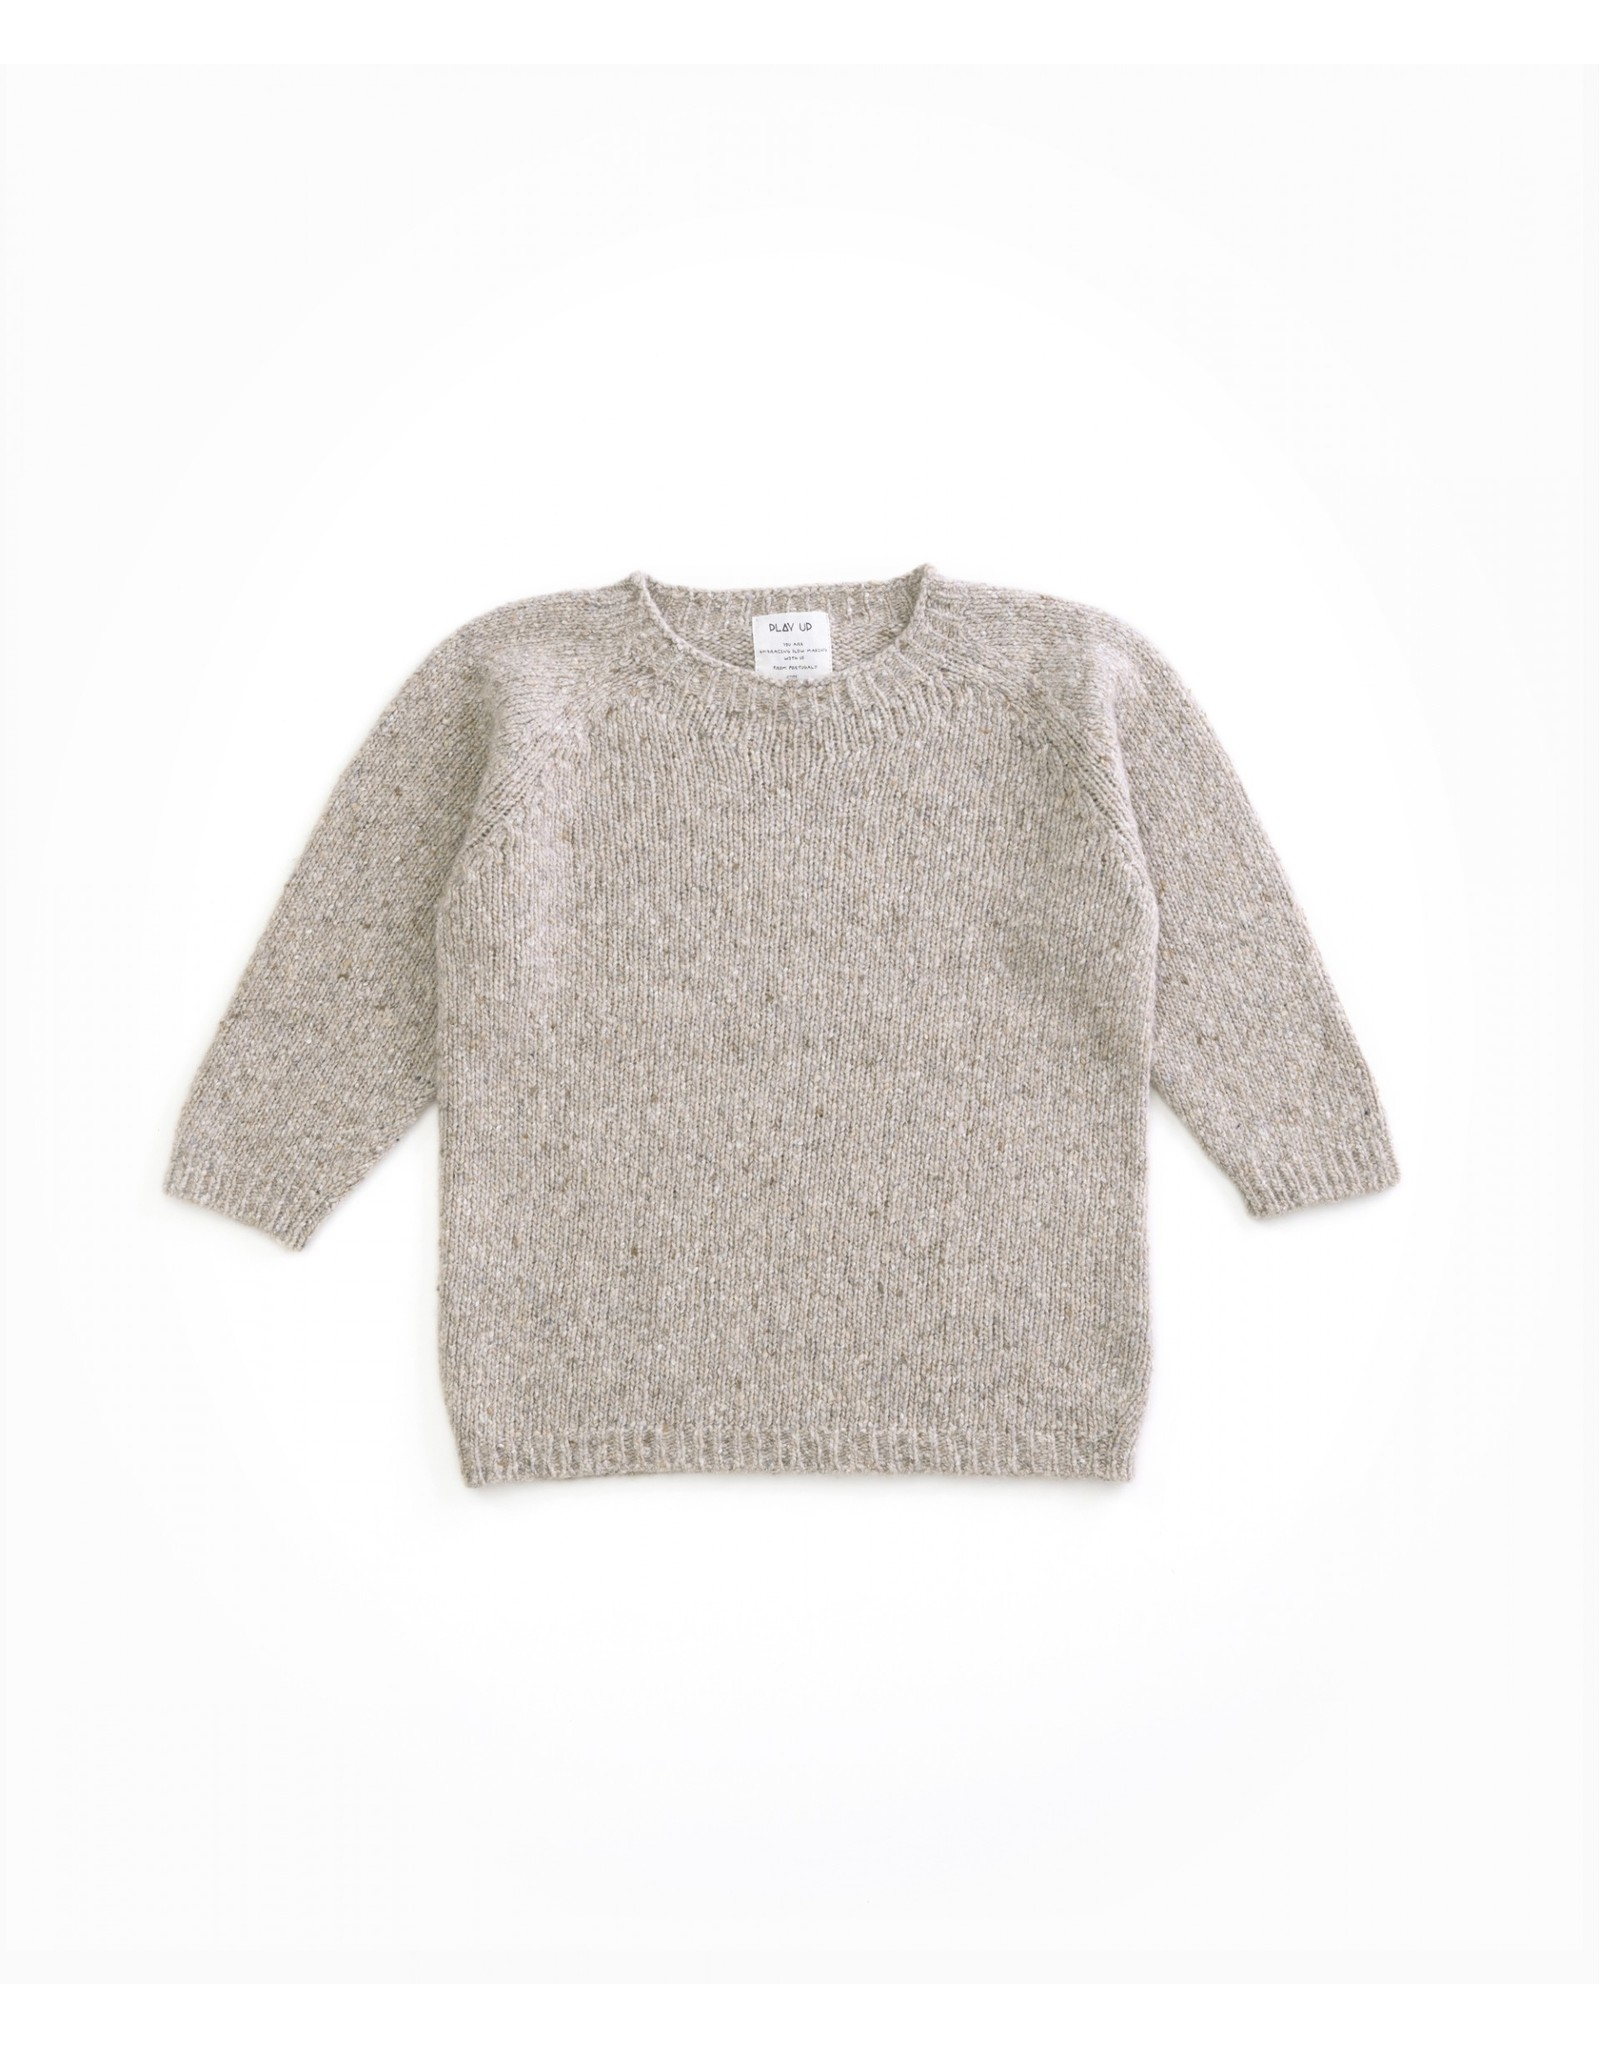 Play Up Play Up gebreide sweater